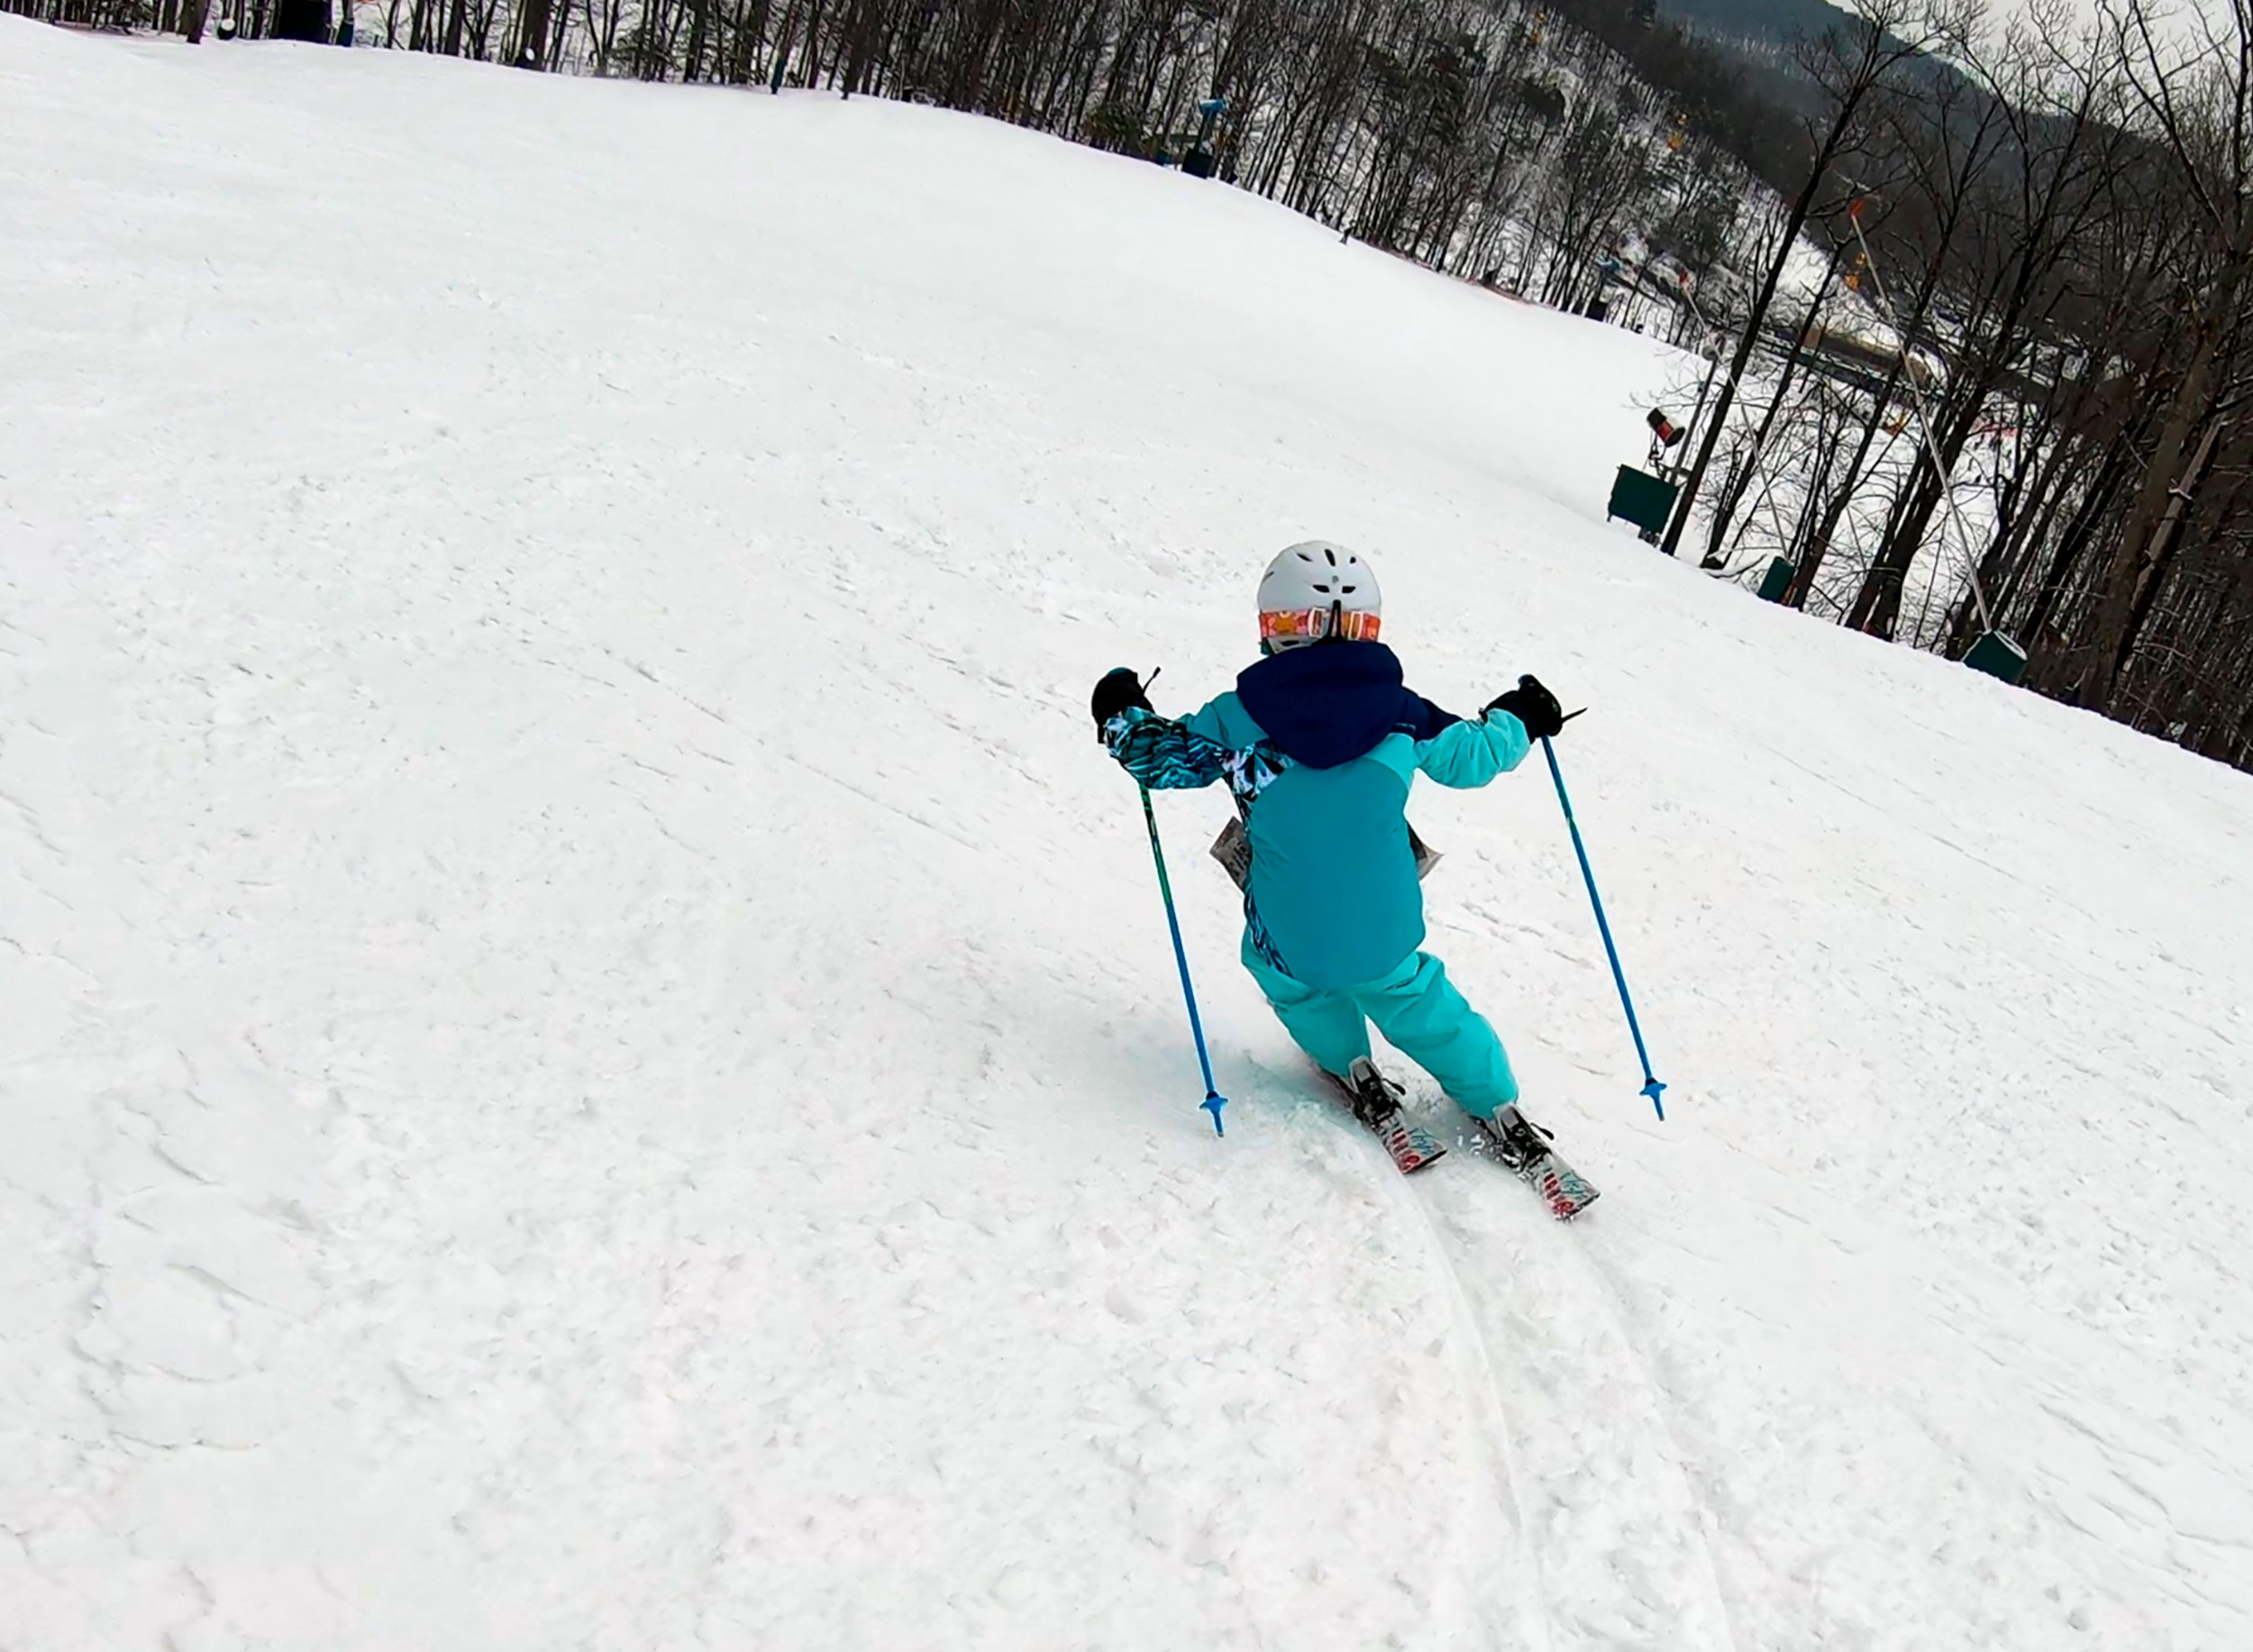 My youngest daughter carving down the mountain. The railroad tracks left by her skis are very clear on the packed snow.